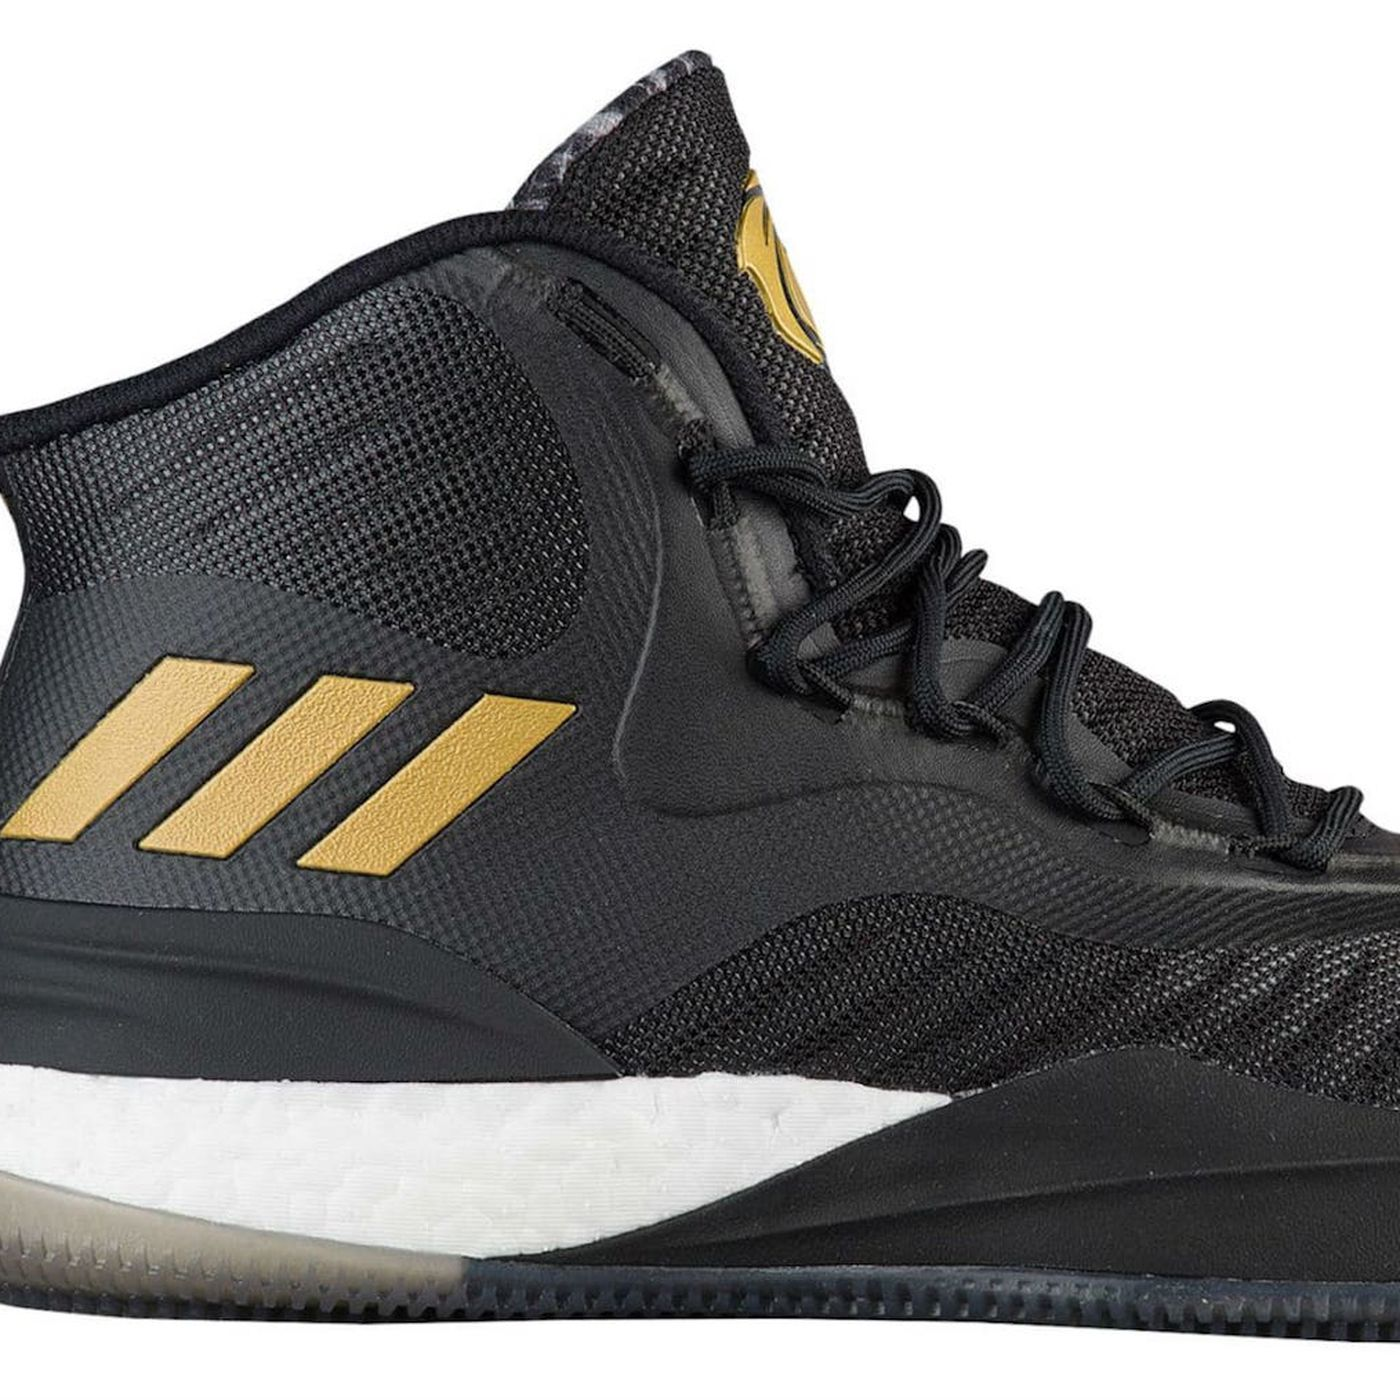 320835c545e0bd Look  Here s the shoe Derrick Rose will wear with the Cavs next season. New  ...